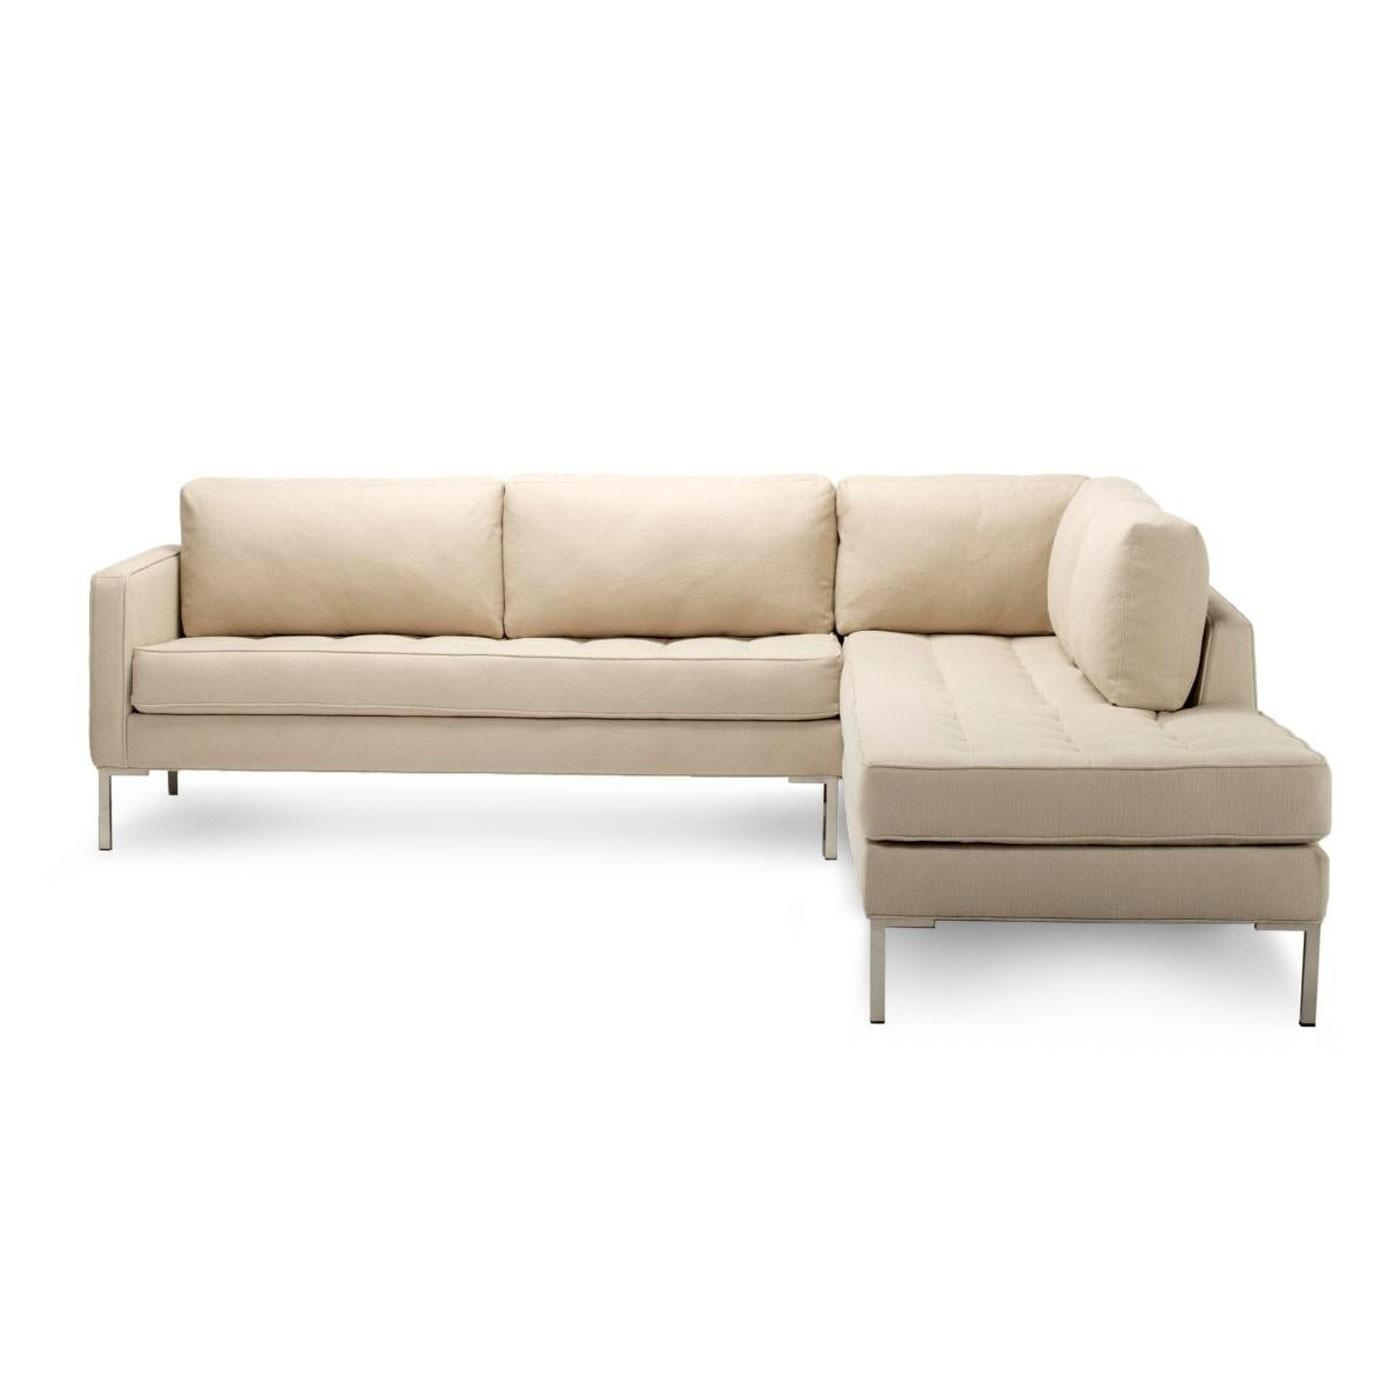 Cheap L Shaped Sofa (View 12 of 15)